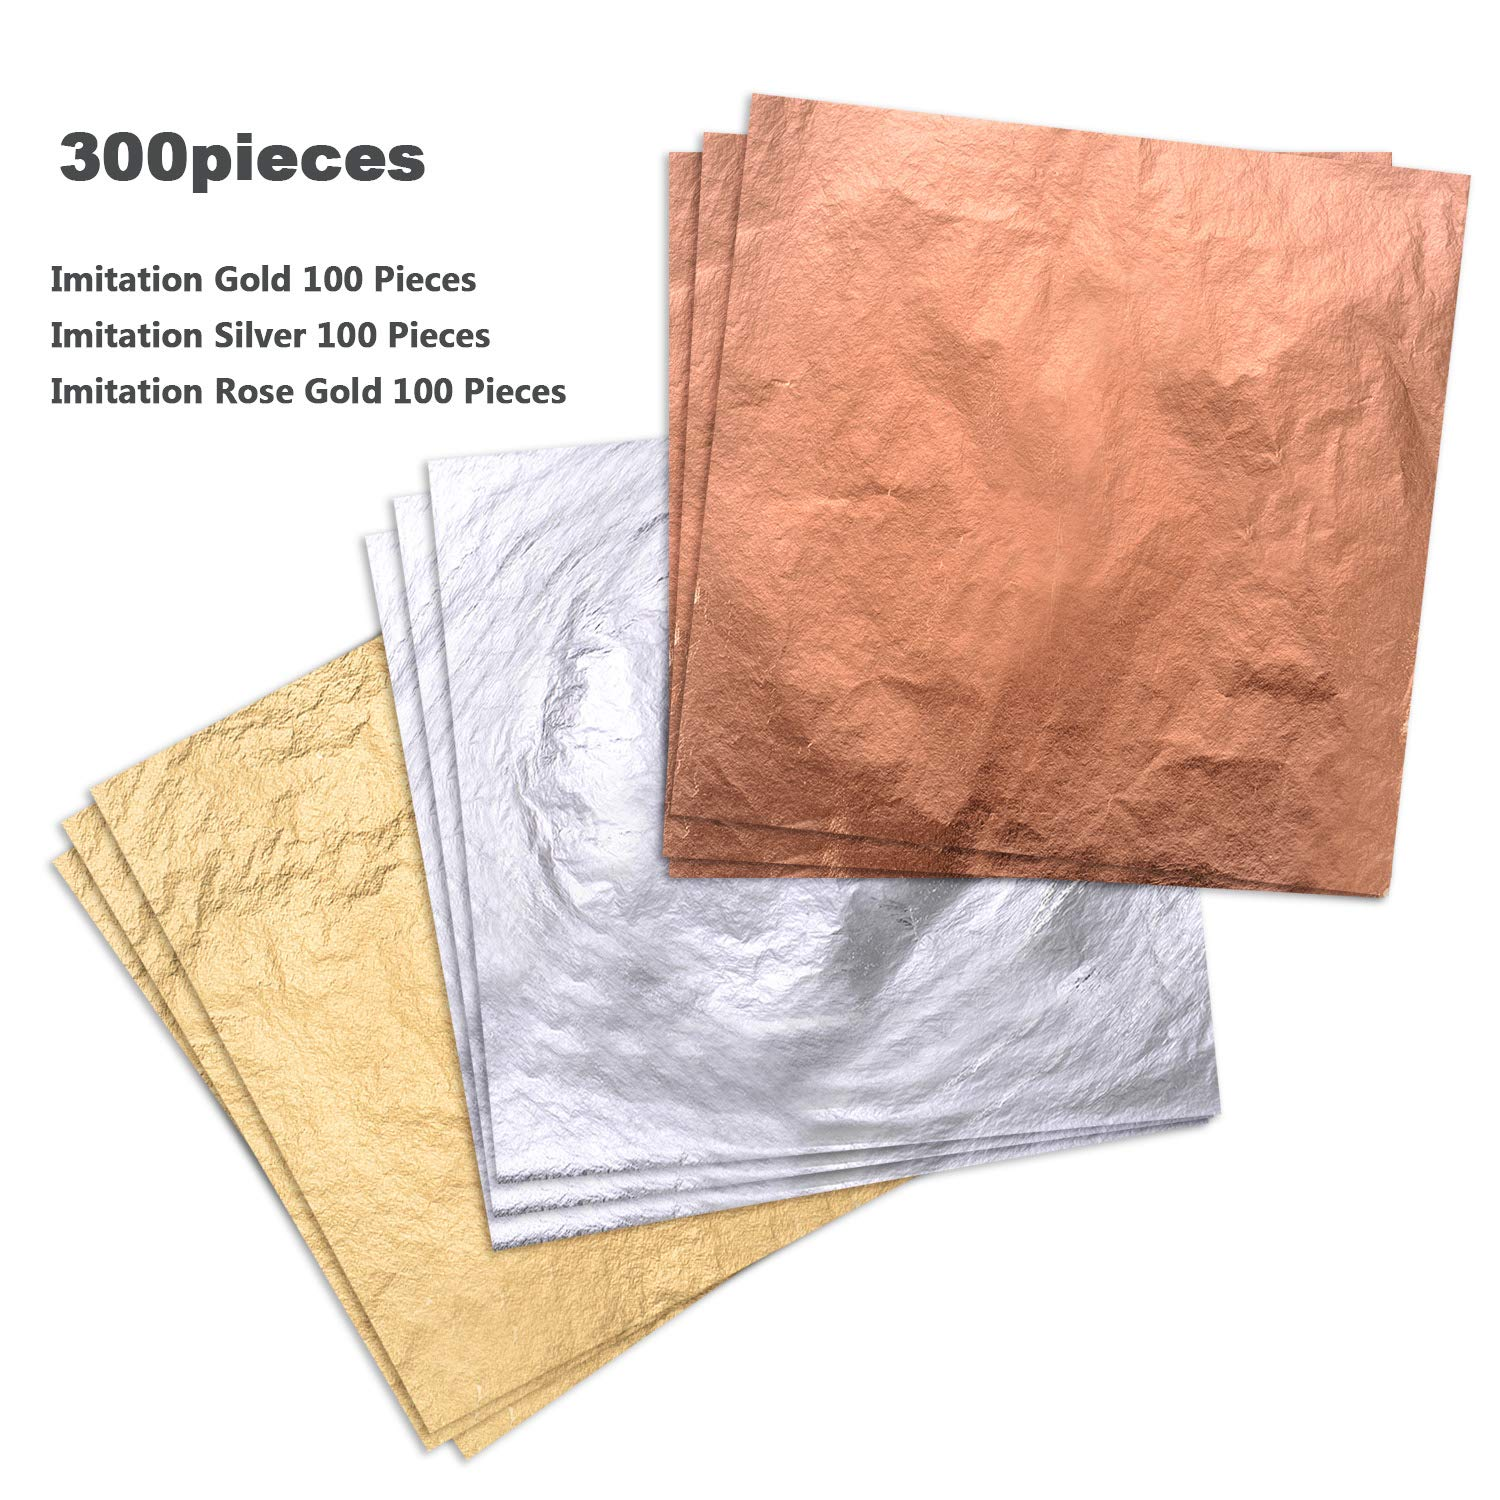 Gold KINNO 300 Pieces of 3 Mixed Color Gold Leaf for Resin- Red Copper Aluminum Foil Leaf Papers for Painting Arts 14cm Statues Gilding Decoration Brush is Included Furniture 5.5